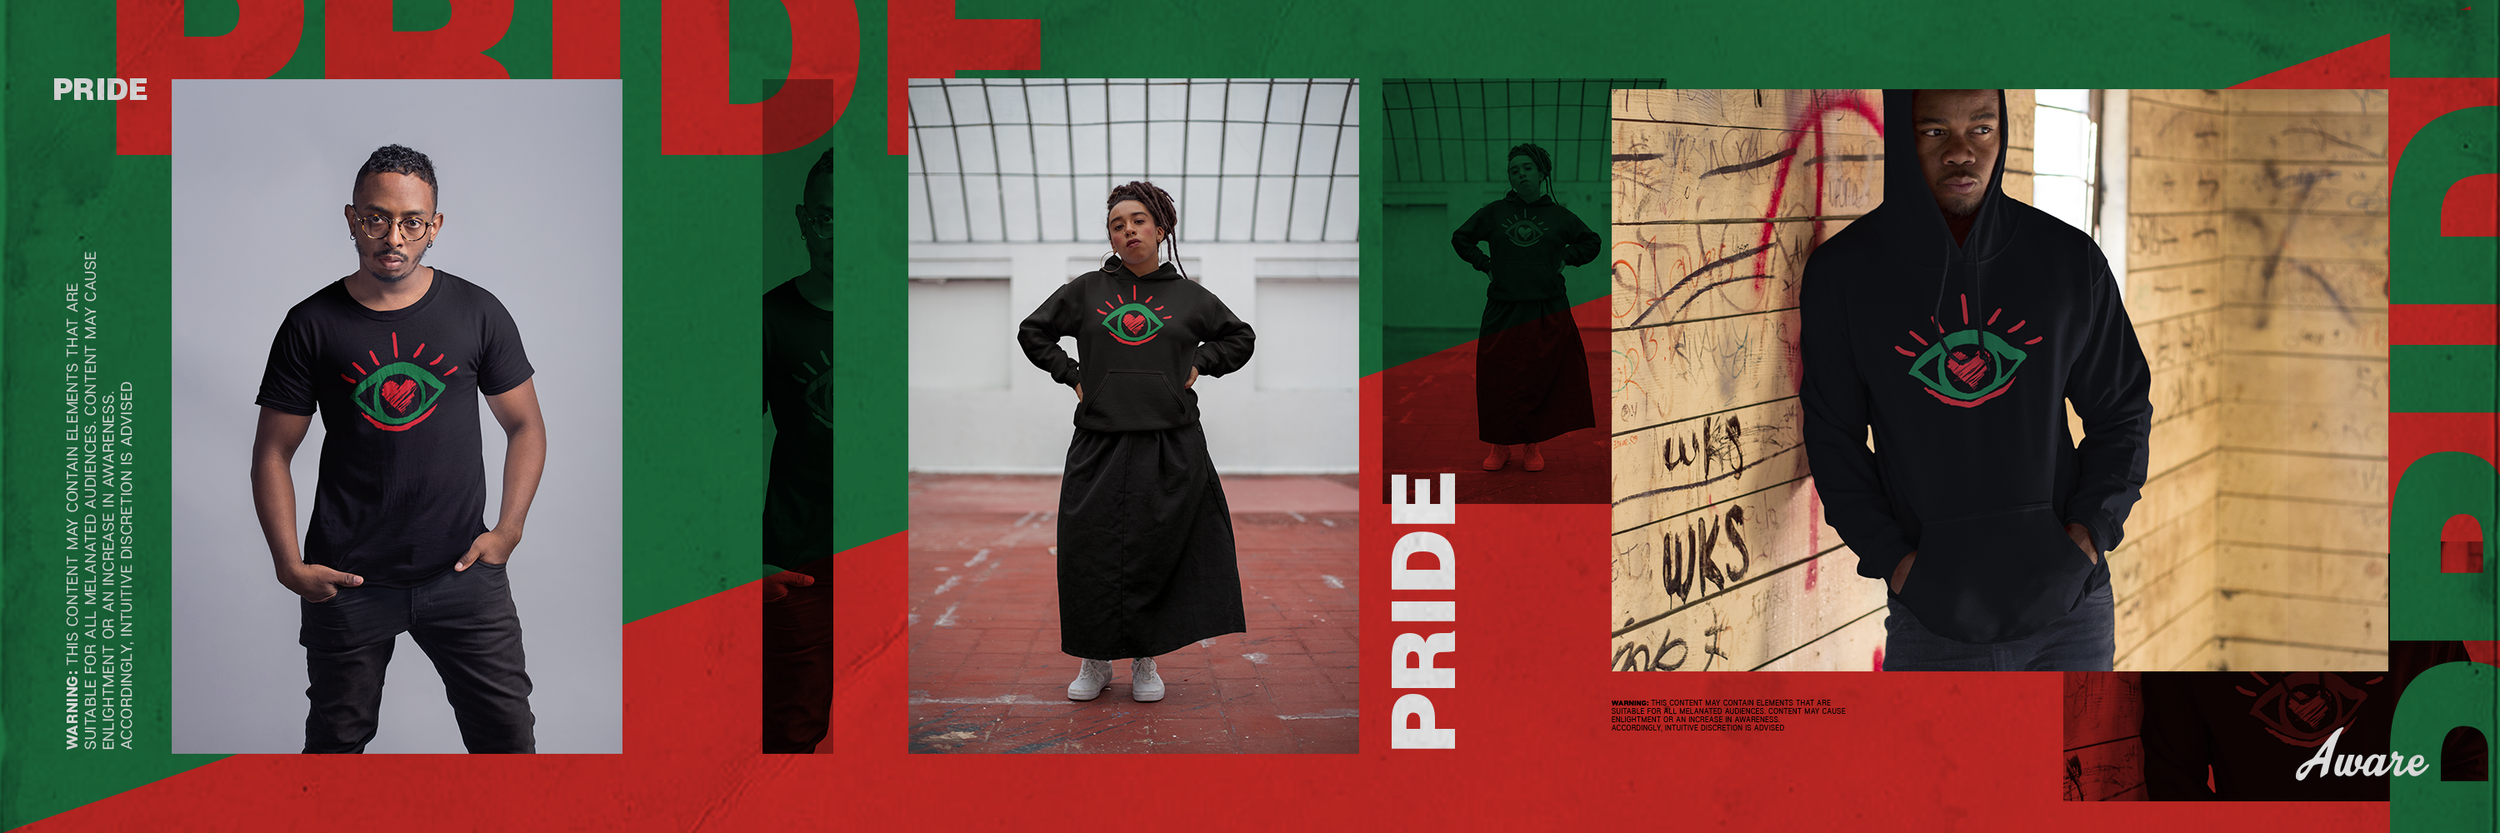 Pride Collection - Released in February, this fresh take on the cultural Red, Black, and Green featured the signature eye logo as the focal point in this collection.